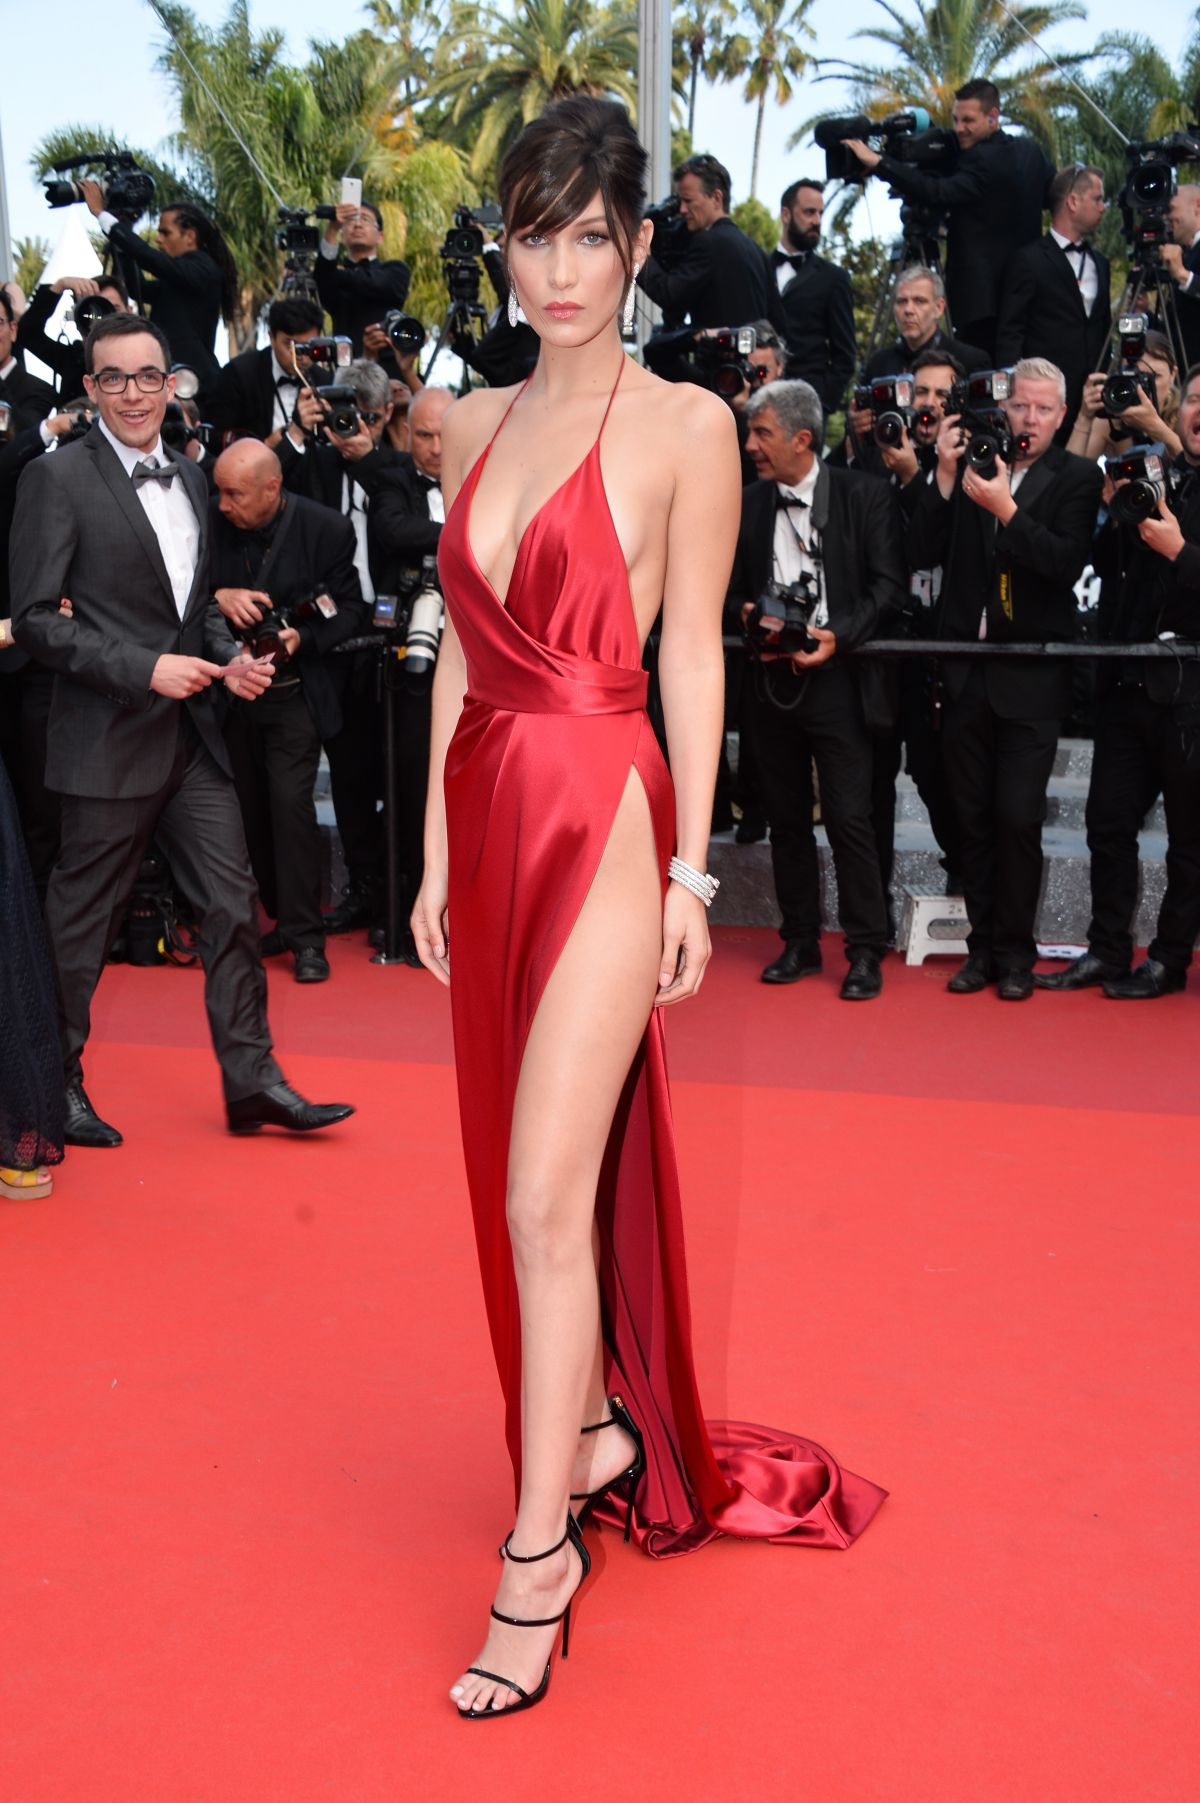 bella-hadid-at-la-fille-inconnue-premiere-at-69th-annual-cannes-fil-festival-05-18-2016_3